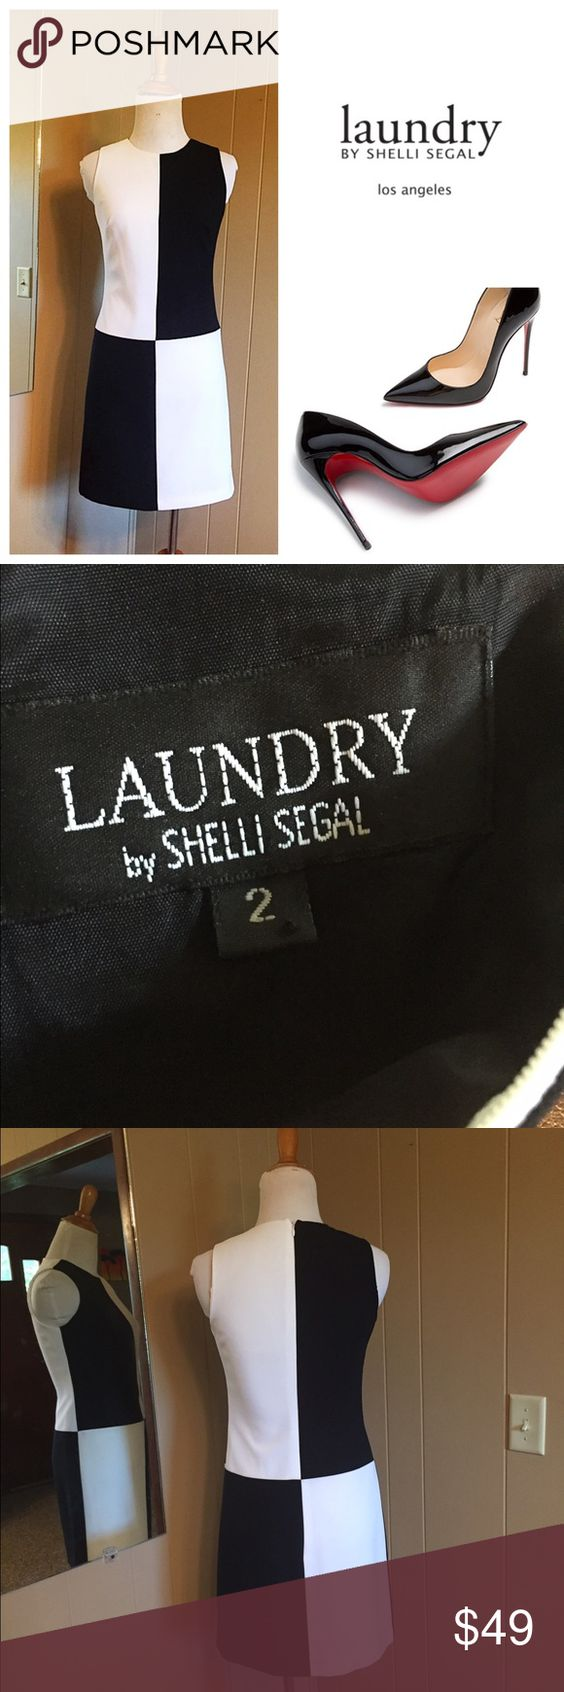 "Laundry by Shelli Segal black & white color block Laundry by Shelli Segal color block dress. Stunning. ""Like New"" condition from no. Smoking home. Fully lined. Polyester. Size 2 Laundry by Shelli Segal Dresses"